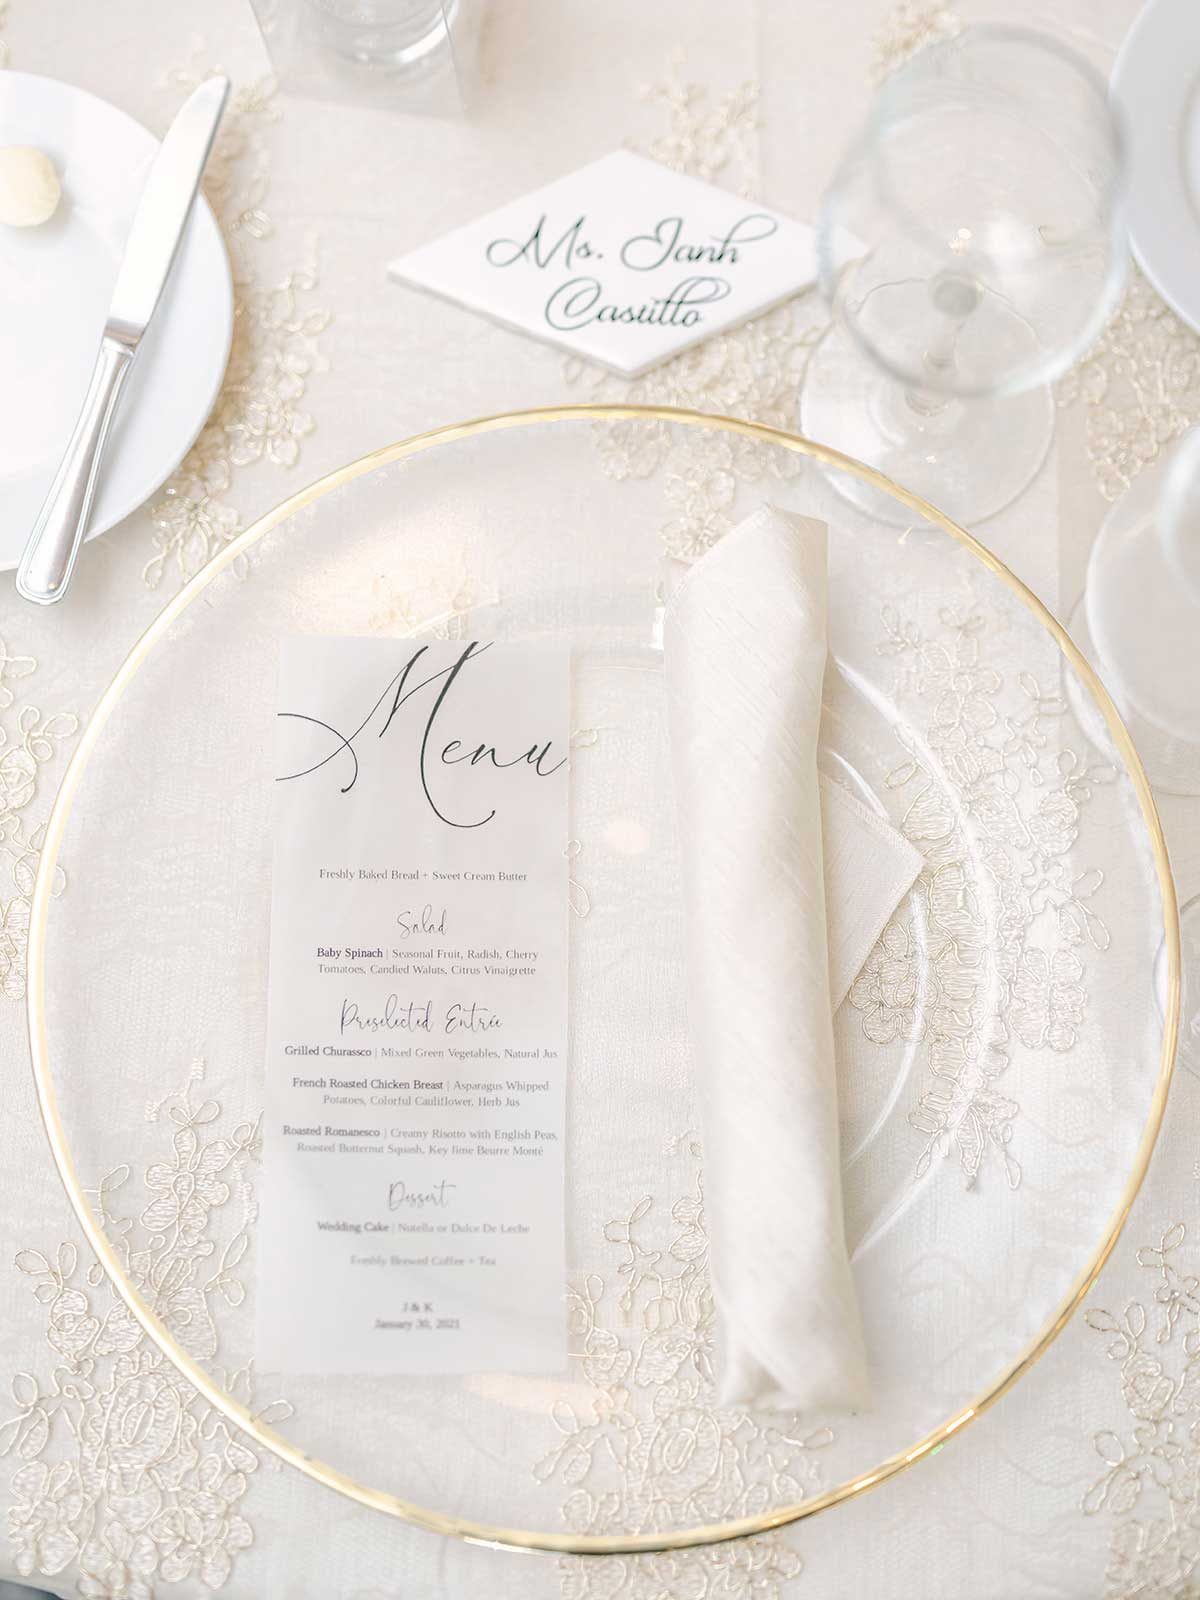 menu, gold rimmed plate and napkin on white lace tablecloth.